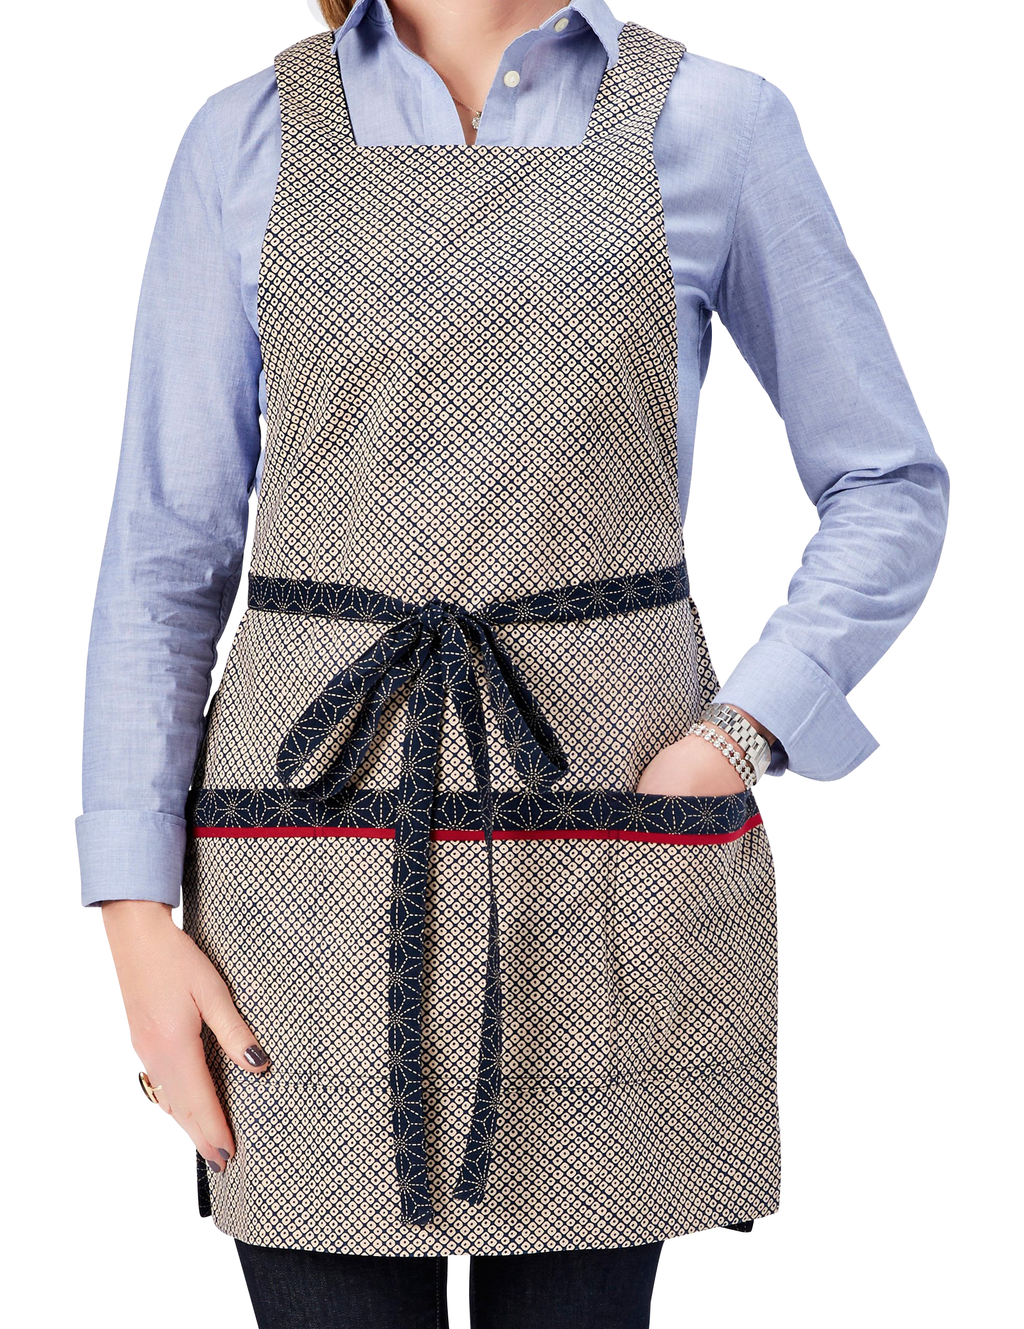 Japanese apron in a Kasuri-inspired print of stitched stars on one side reversing to an ikat dot print on the other in navy and ivory, ikat dot print side, front view.